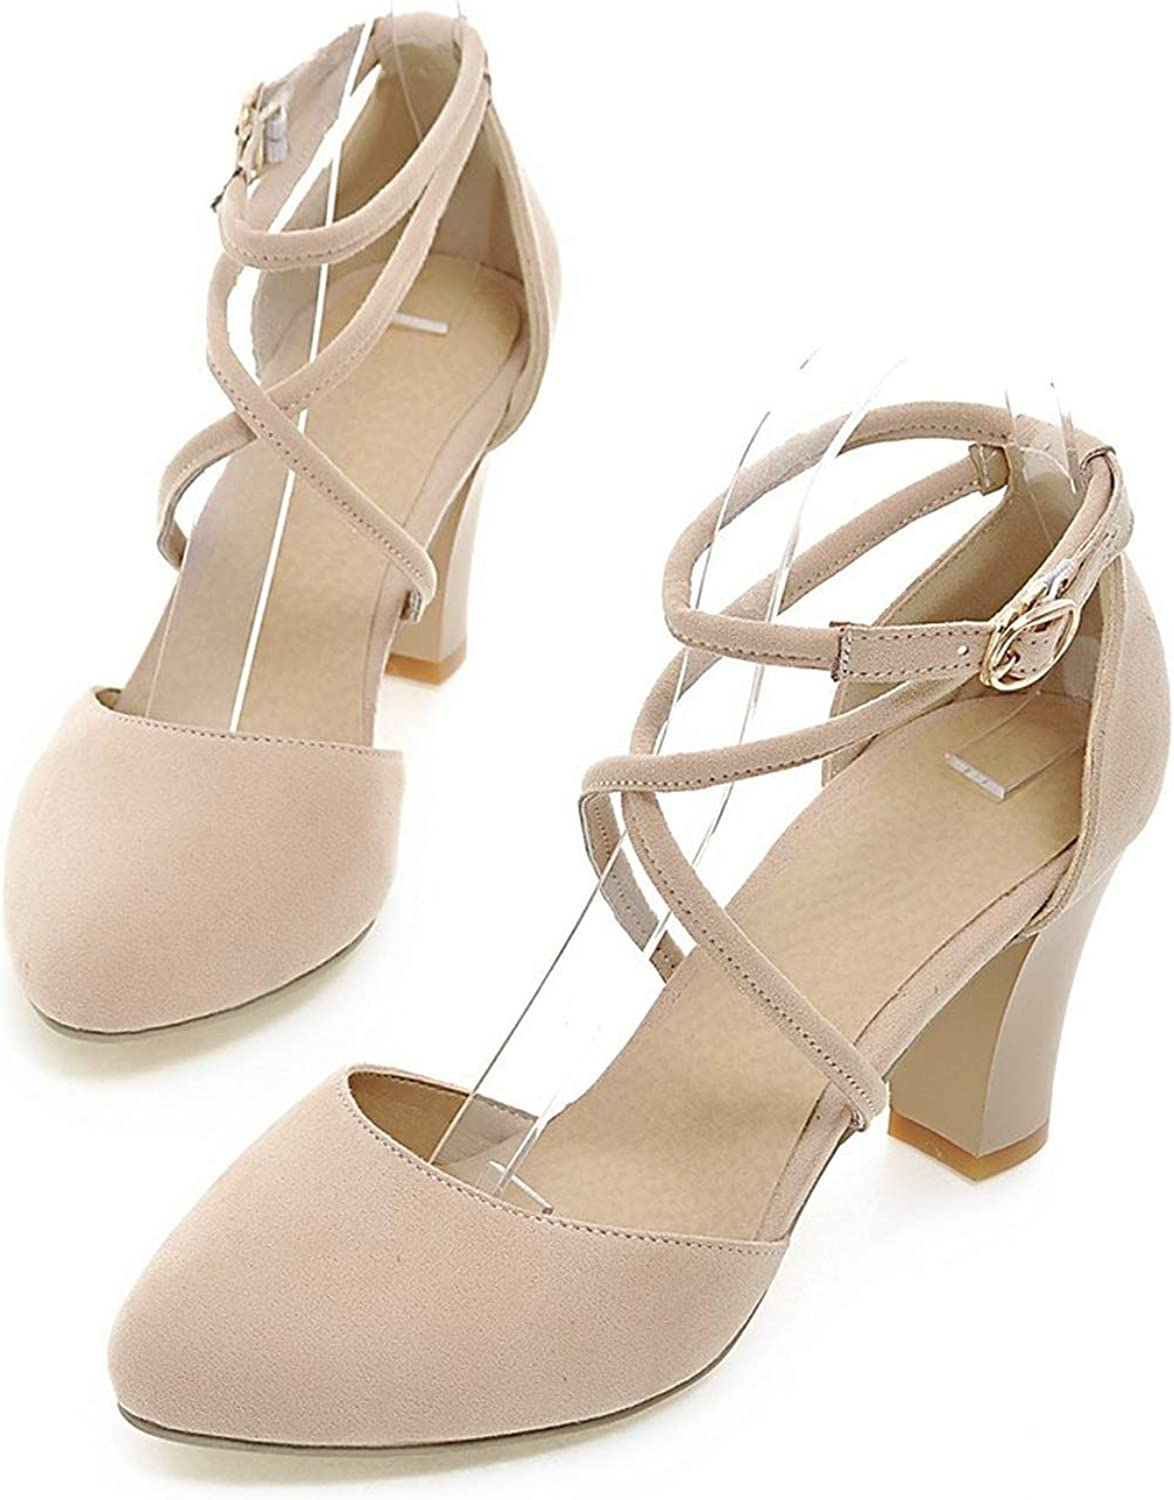 Sexy Ladies shoes high Heels Round Toe Square Heel with Buckle Grey Light bluee color Pumps shoes,Beige,4